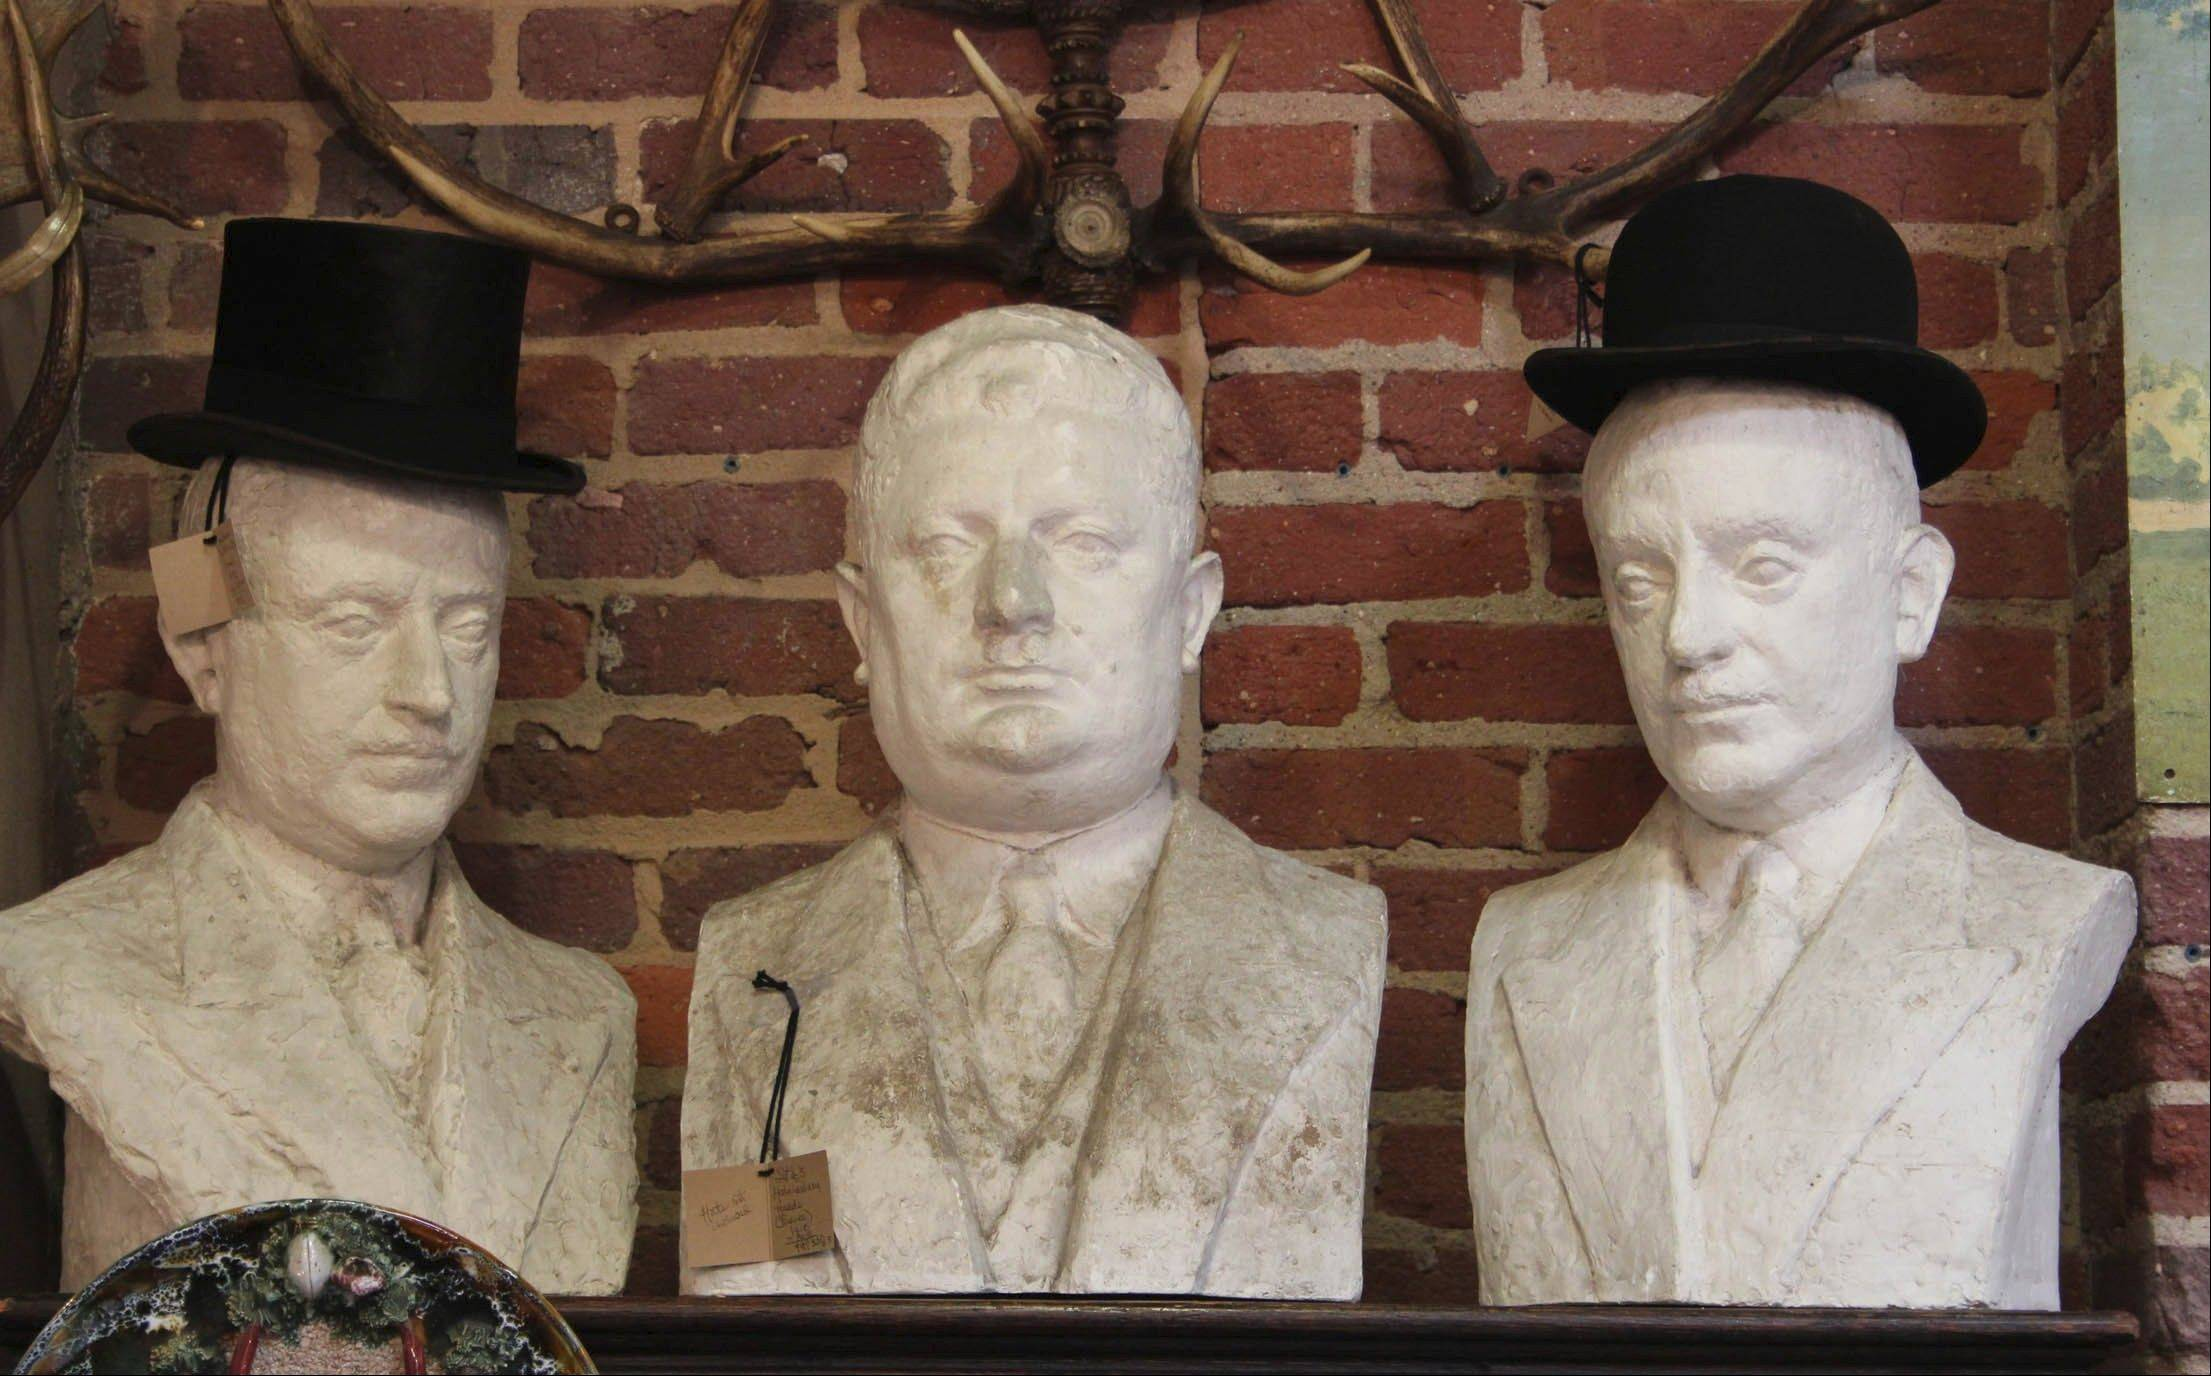 A set of three French haberdashery busts of heavy-duty plaster are from Added Oomph!, an accessories store in High Point, N.C.